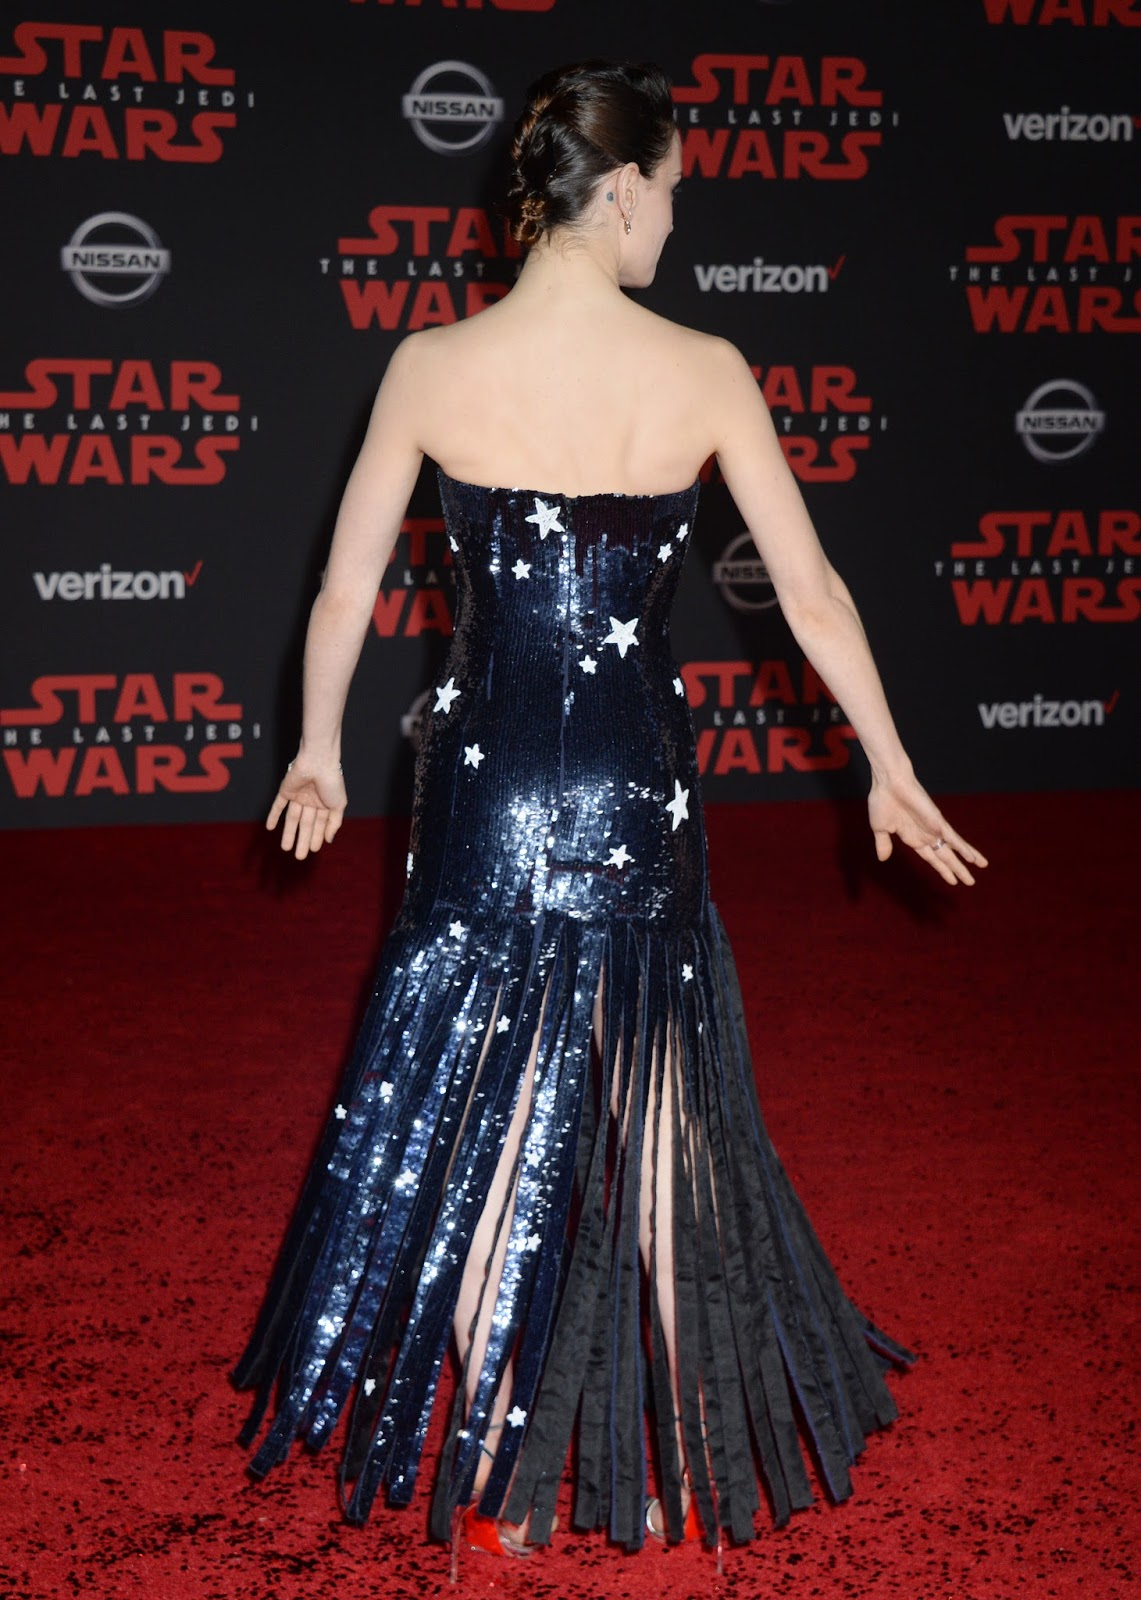 Daisy Ridley On the Red Carpet of the 'Star Wars The Last Jedi' premiere in Los Angeles